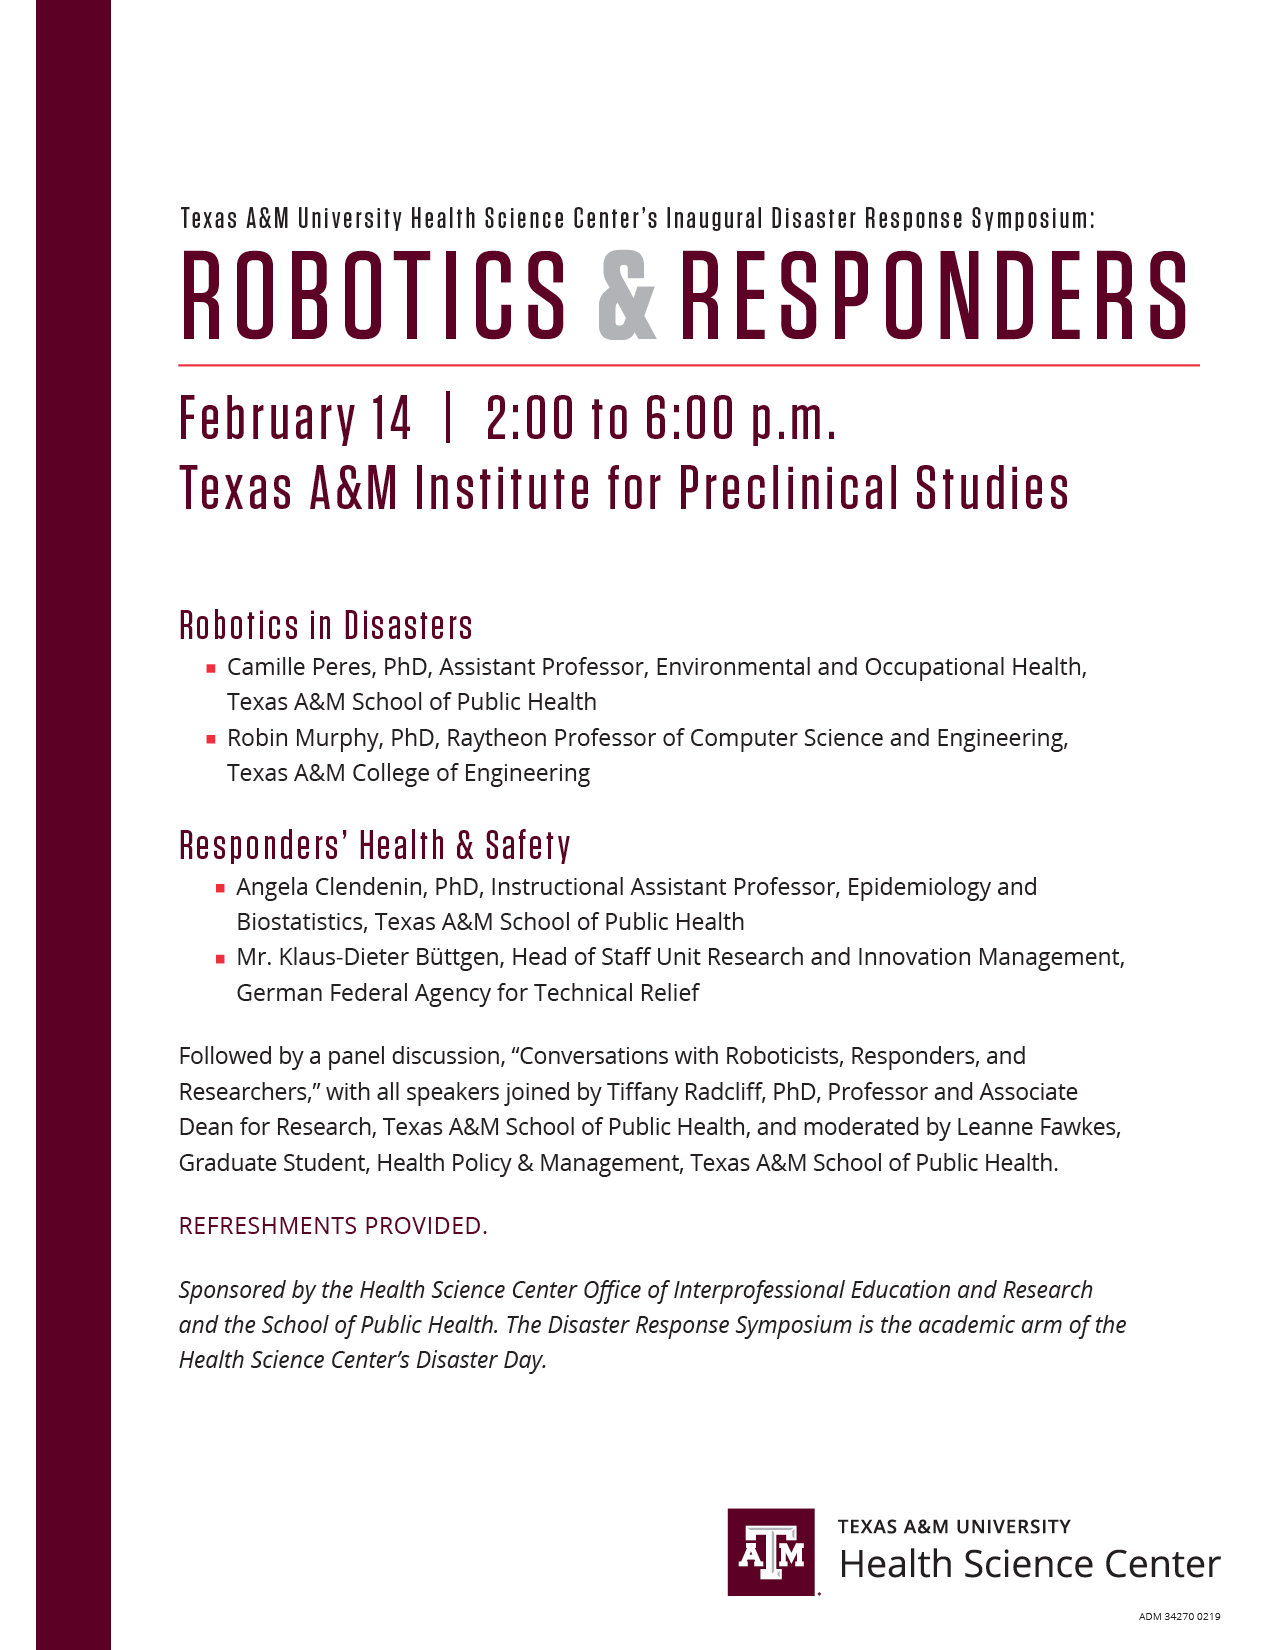 Robotics and Responders Symposium